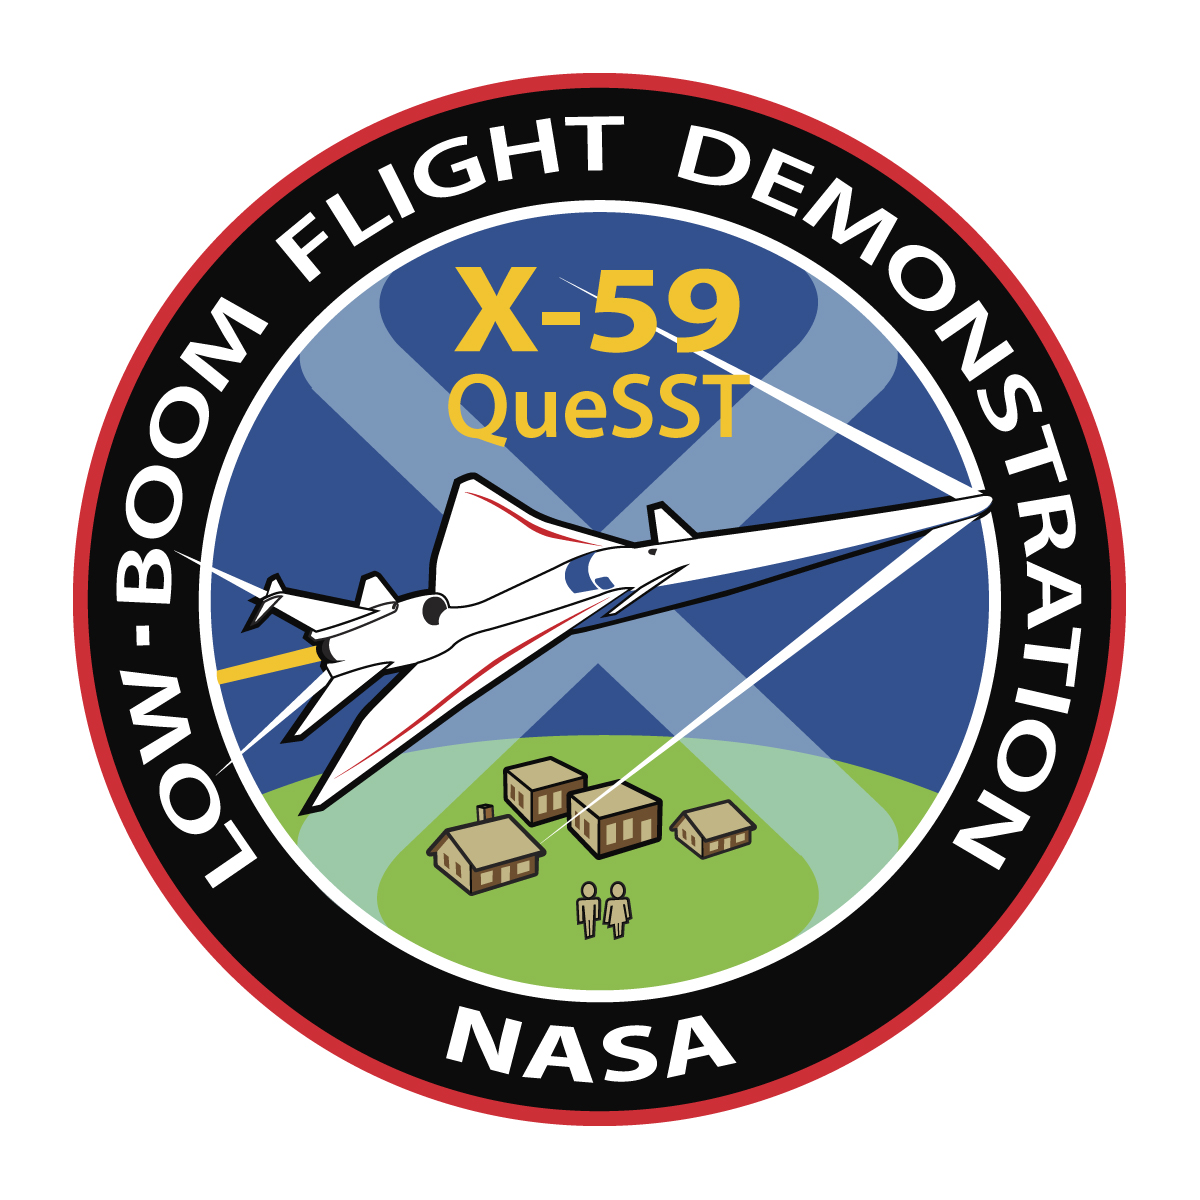 Patch for X-59 SST